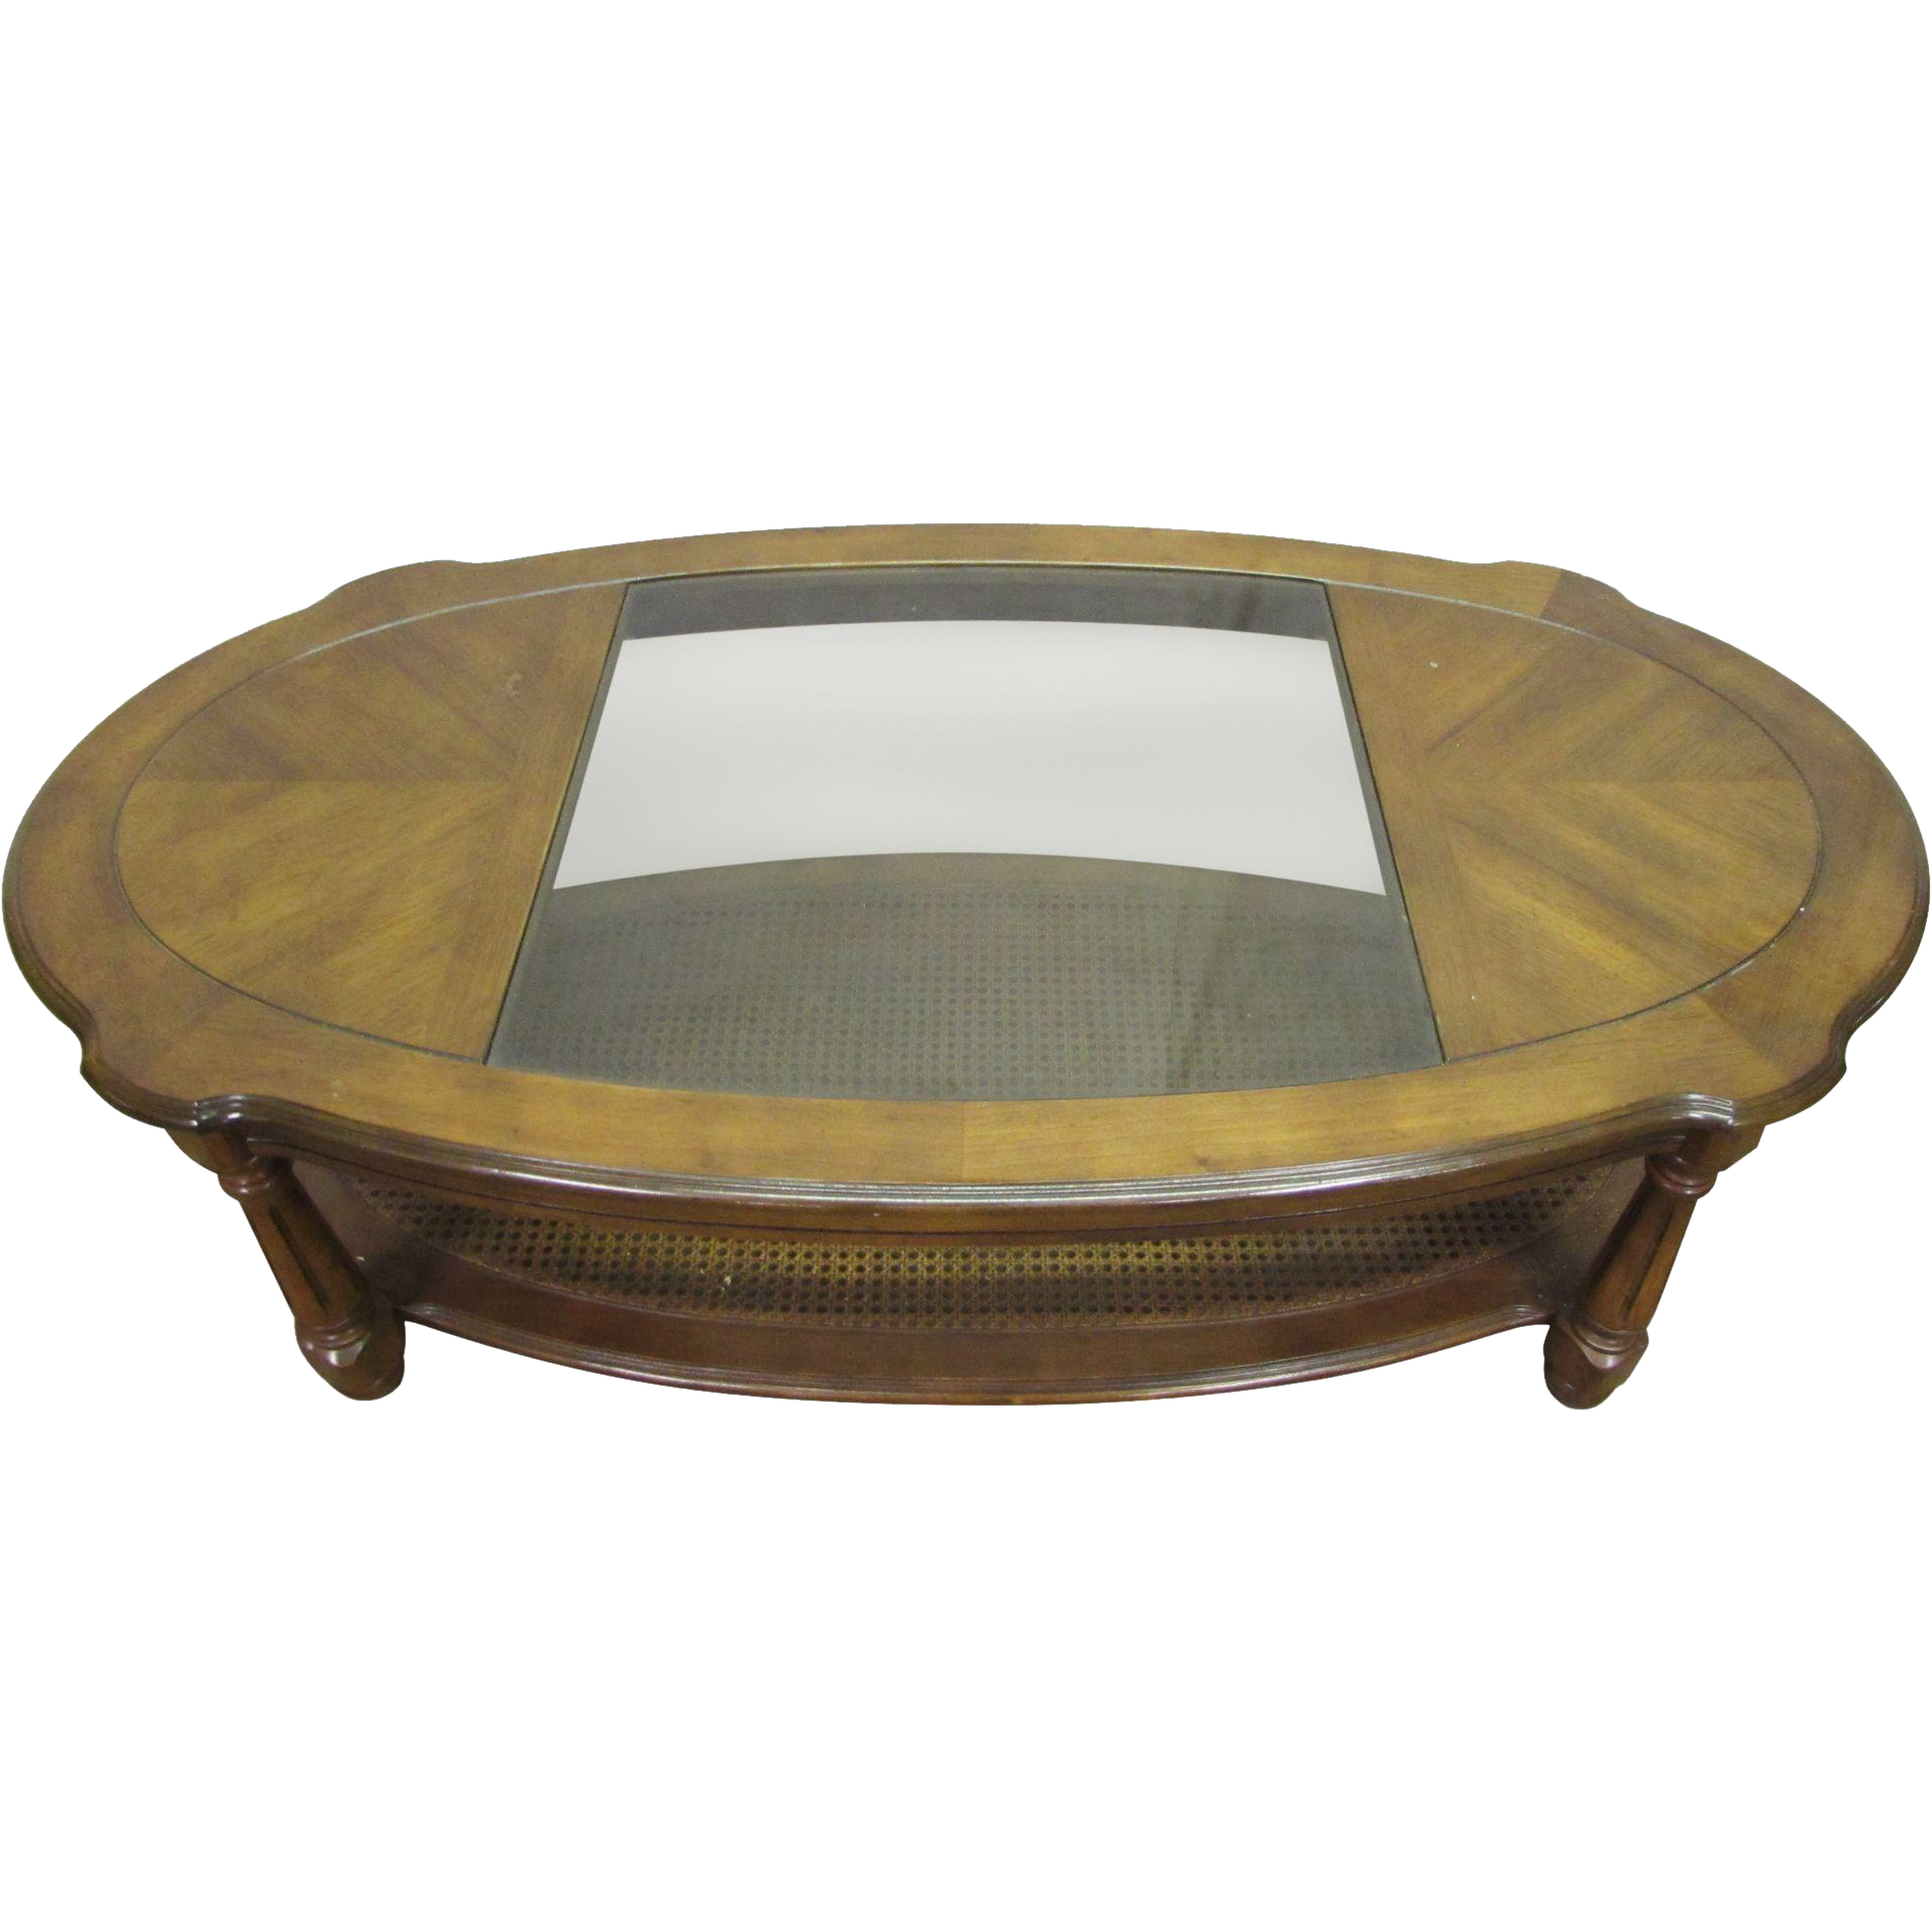 Oval Oak Coffee Table With Glass Center From Oldegoodthings On Ruby Lane